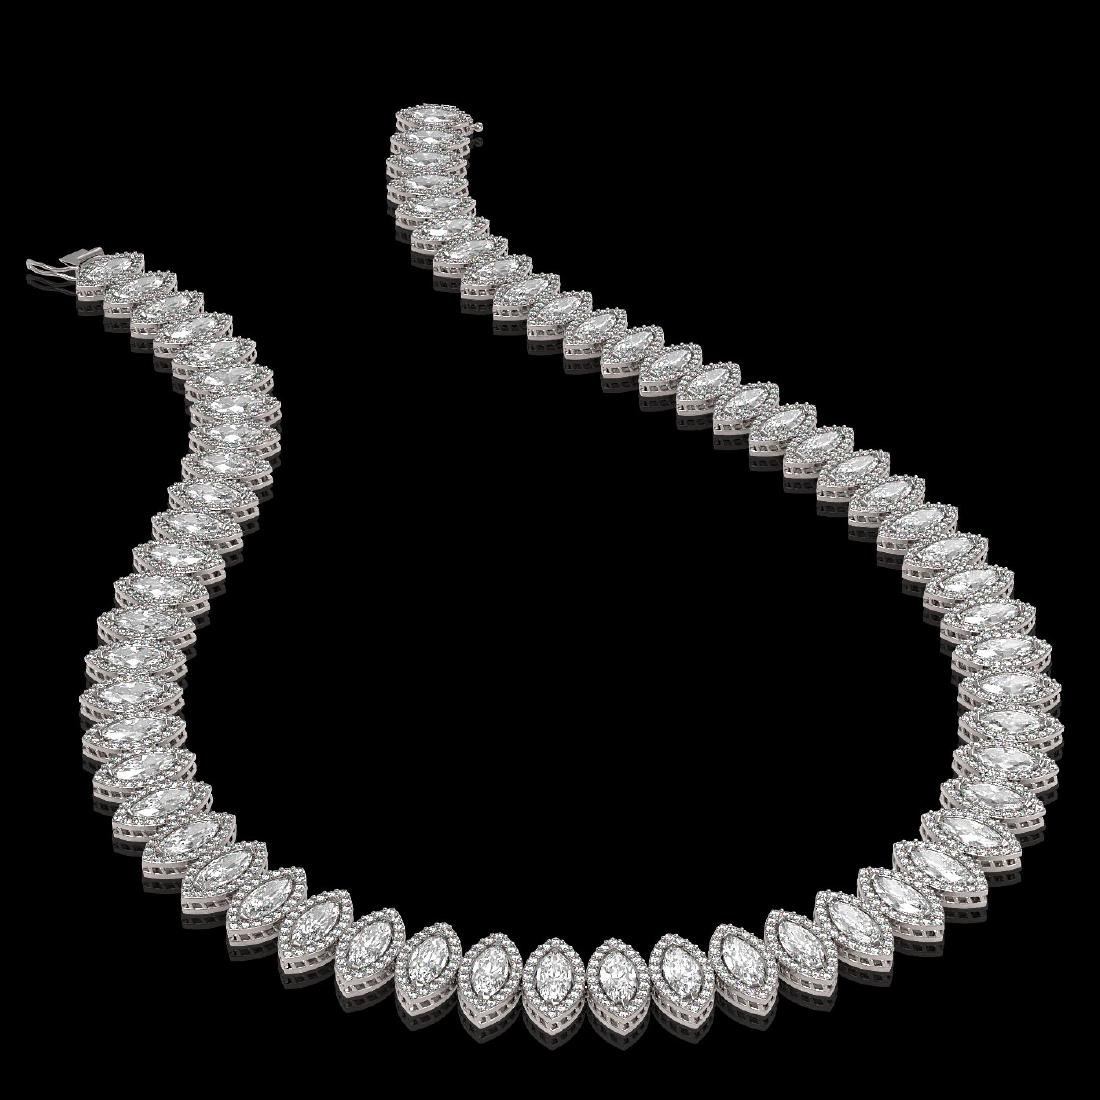 39.68 CTW Marquise Diamond Designer Necklace 18K White - 2